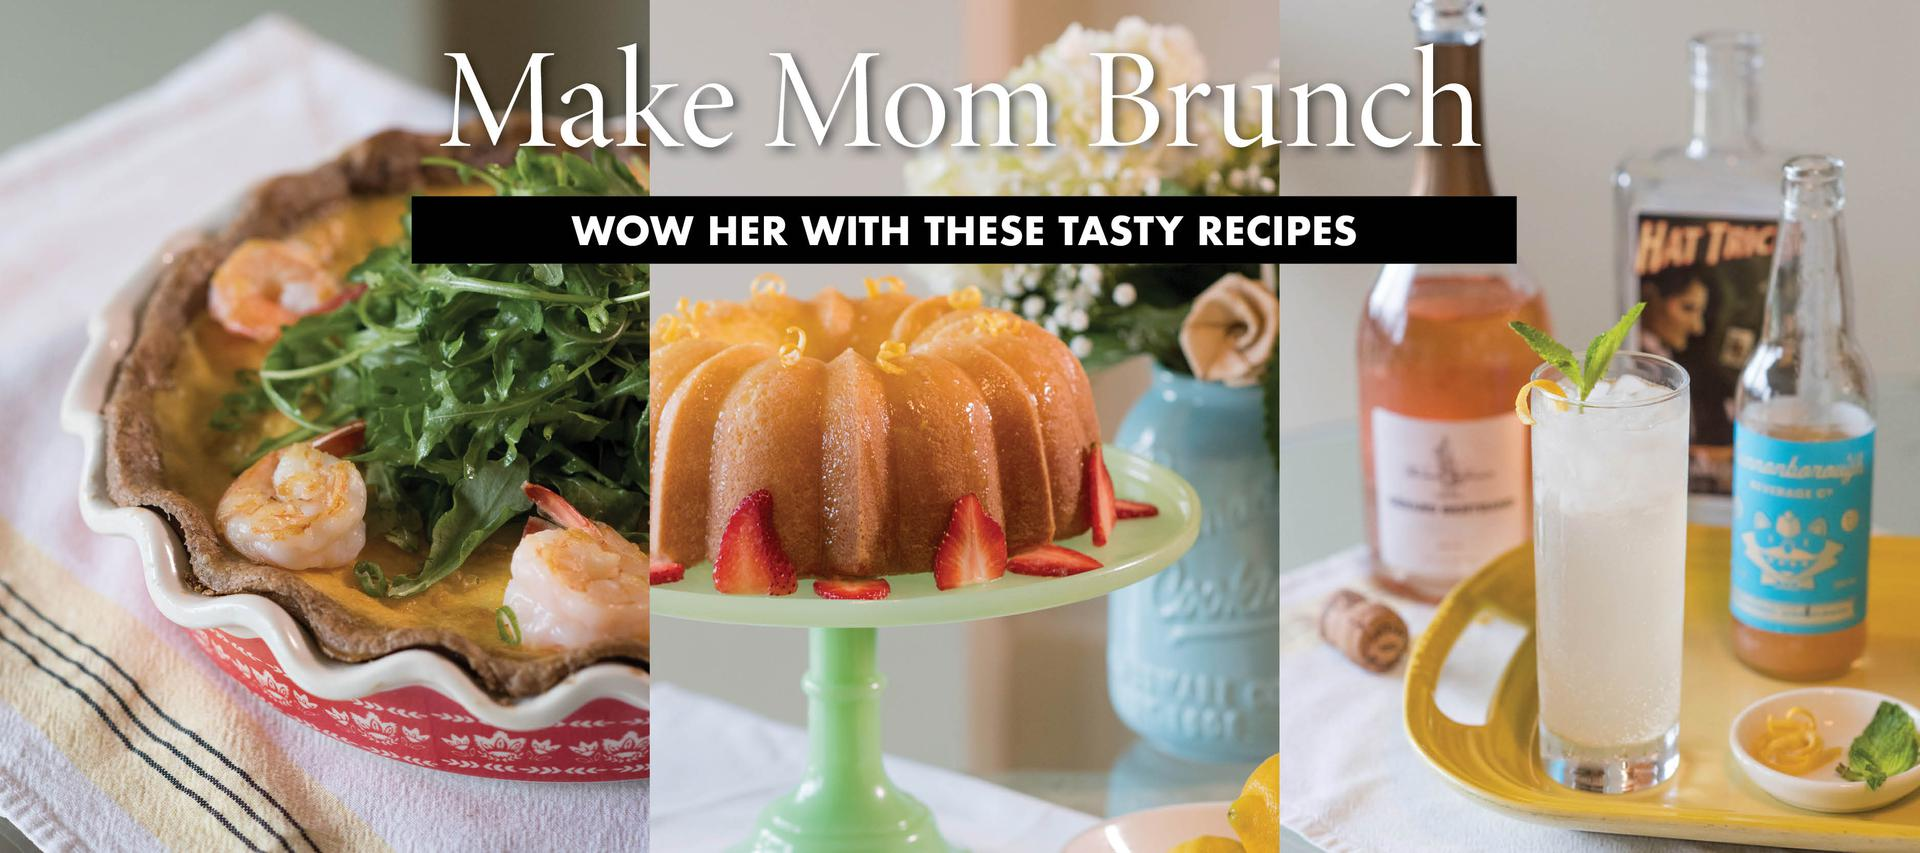 Make Mom Brunch